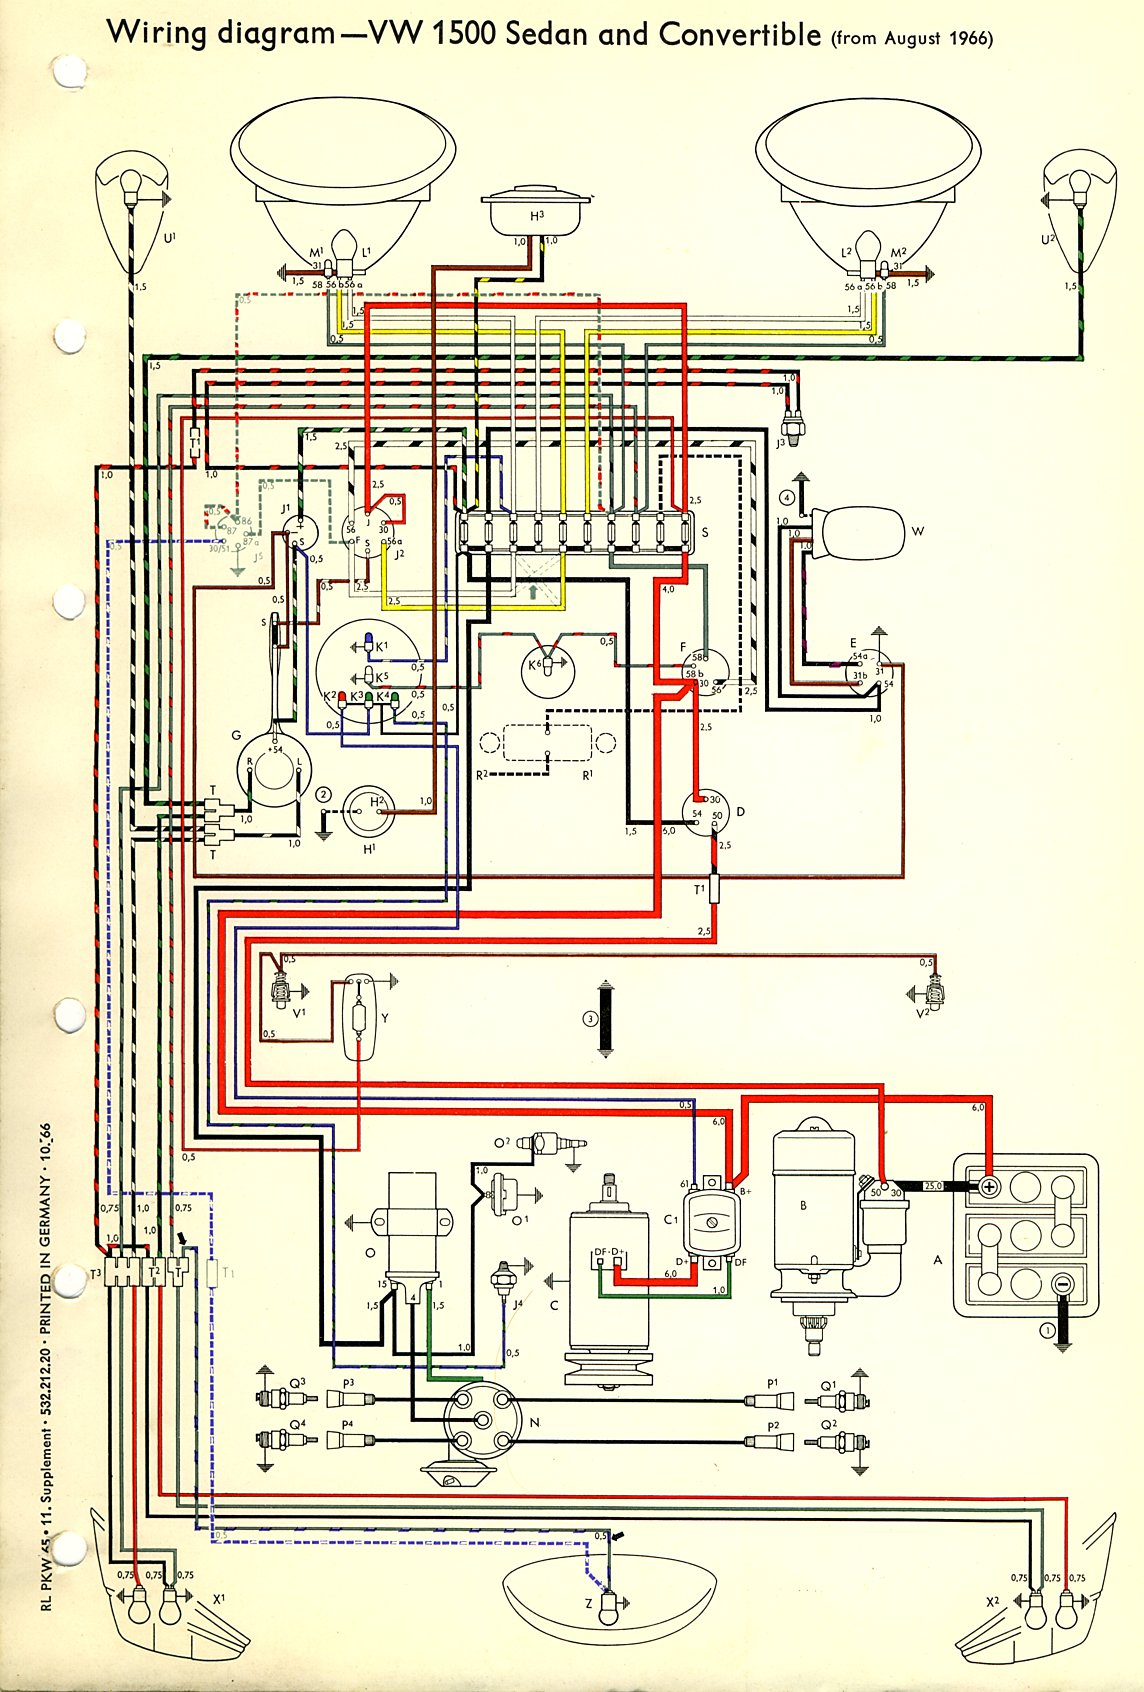 1971 Bus Fuse Box | Wiring Diagram Vw Pickup Fuse Diagram on toyota fuse diagram, isuzu pickup fuse diagram, volkswagen fuse diagram, lexus fuse diagram, ford bronco fuse diagram, volvo fuse diagram, ford mustang fuse diagram,